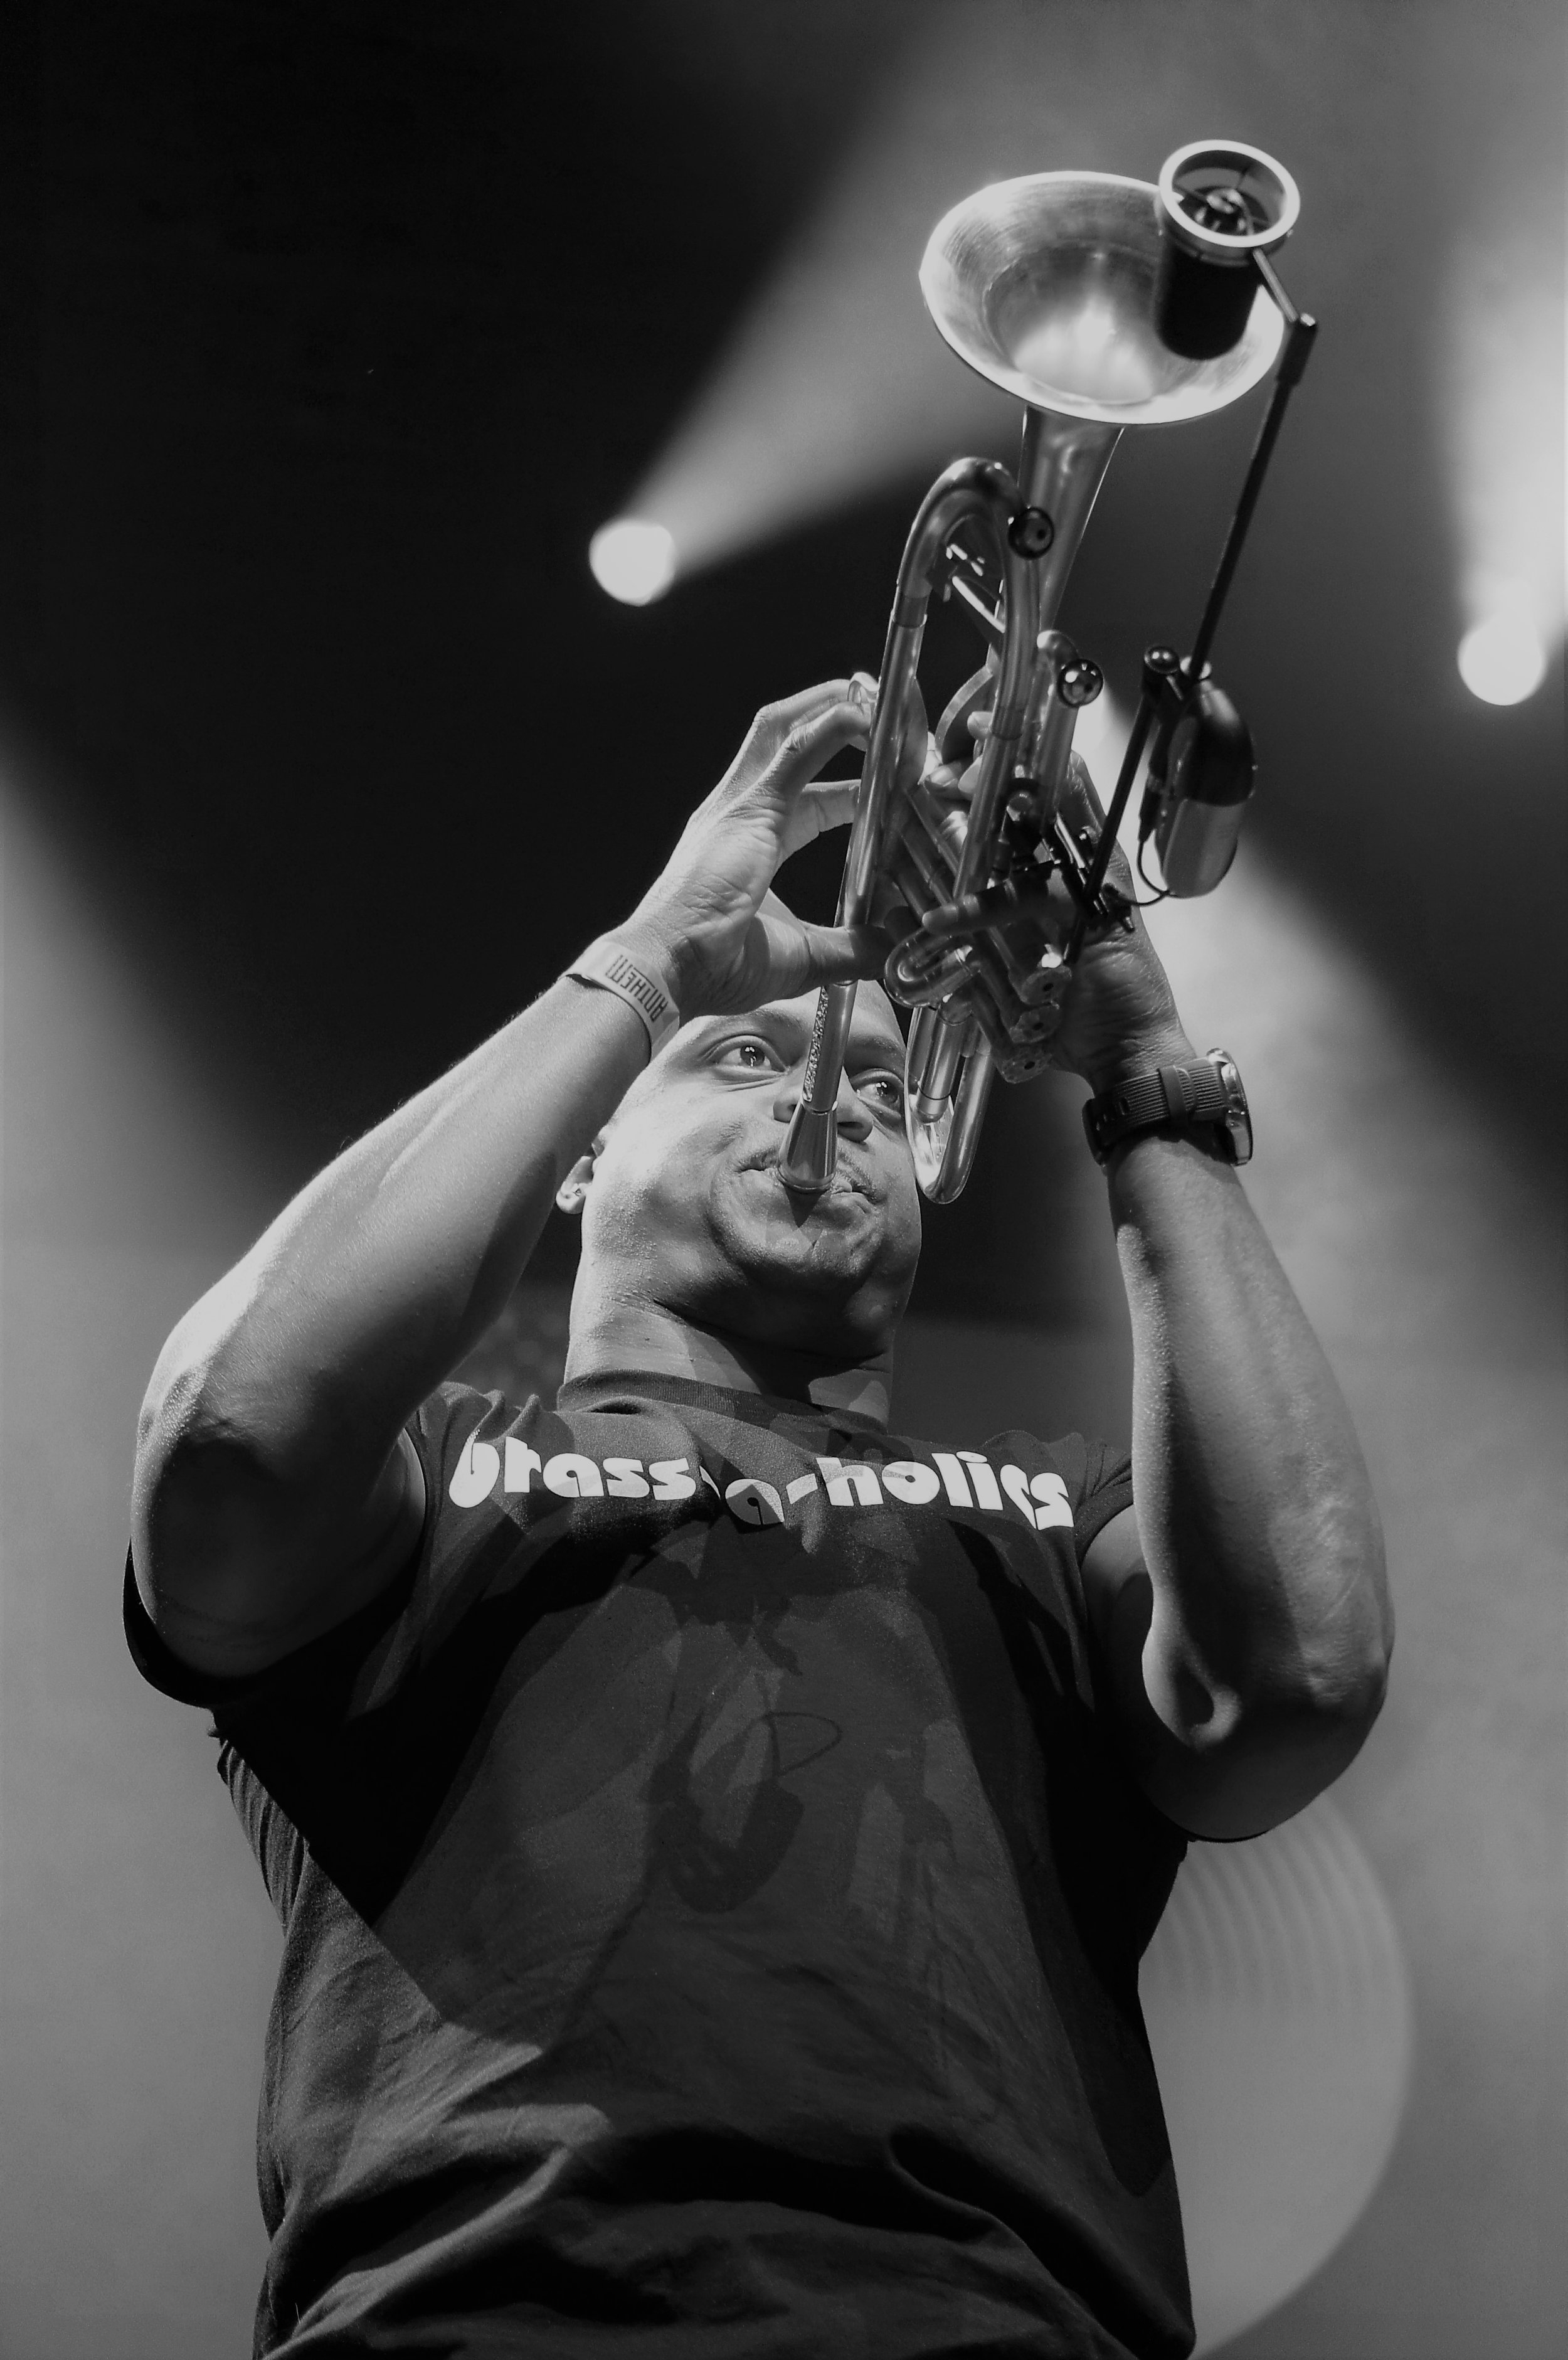 The Brass-A-Holics performed at The Anthem 6/15/19 (photo by Bridget Arnwine)